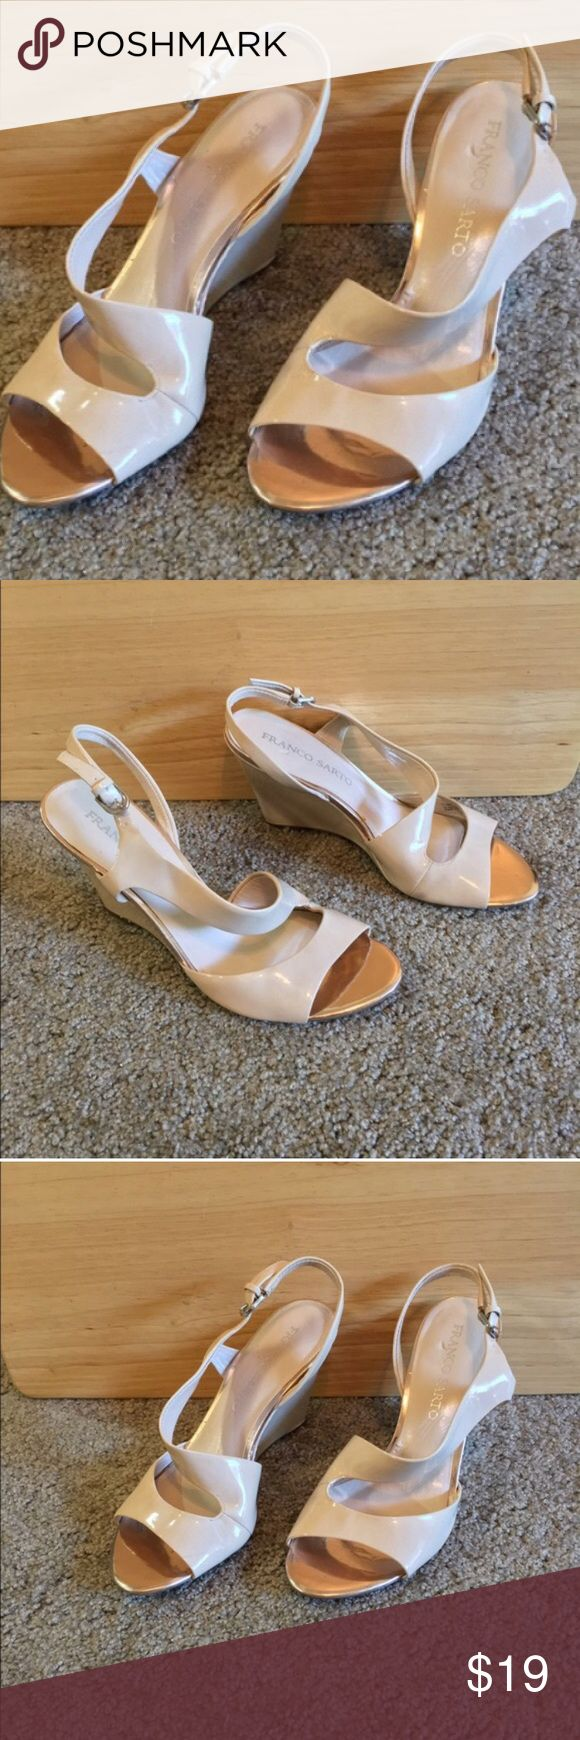 NWOT Franco Sarto Beige Wedge Sandals 7.5 Beautiful patent leather Beige wedge sandals never worn! Only mark in on the left inner sole shown in last picture won't be see when they are being worn.  Size 7.5 with 3.5 inch wedge. Franco Sarto Shoes Wedges